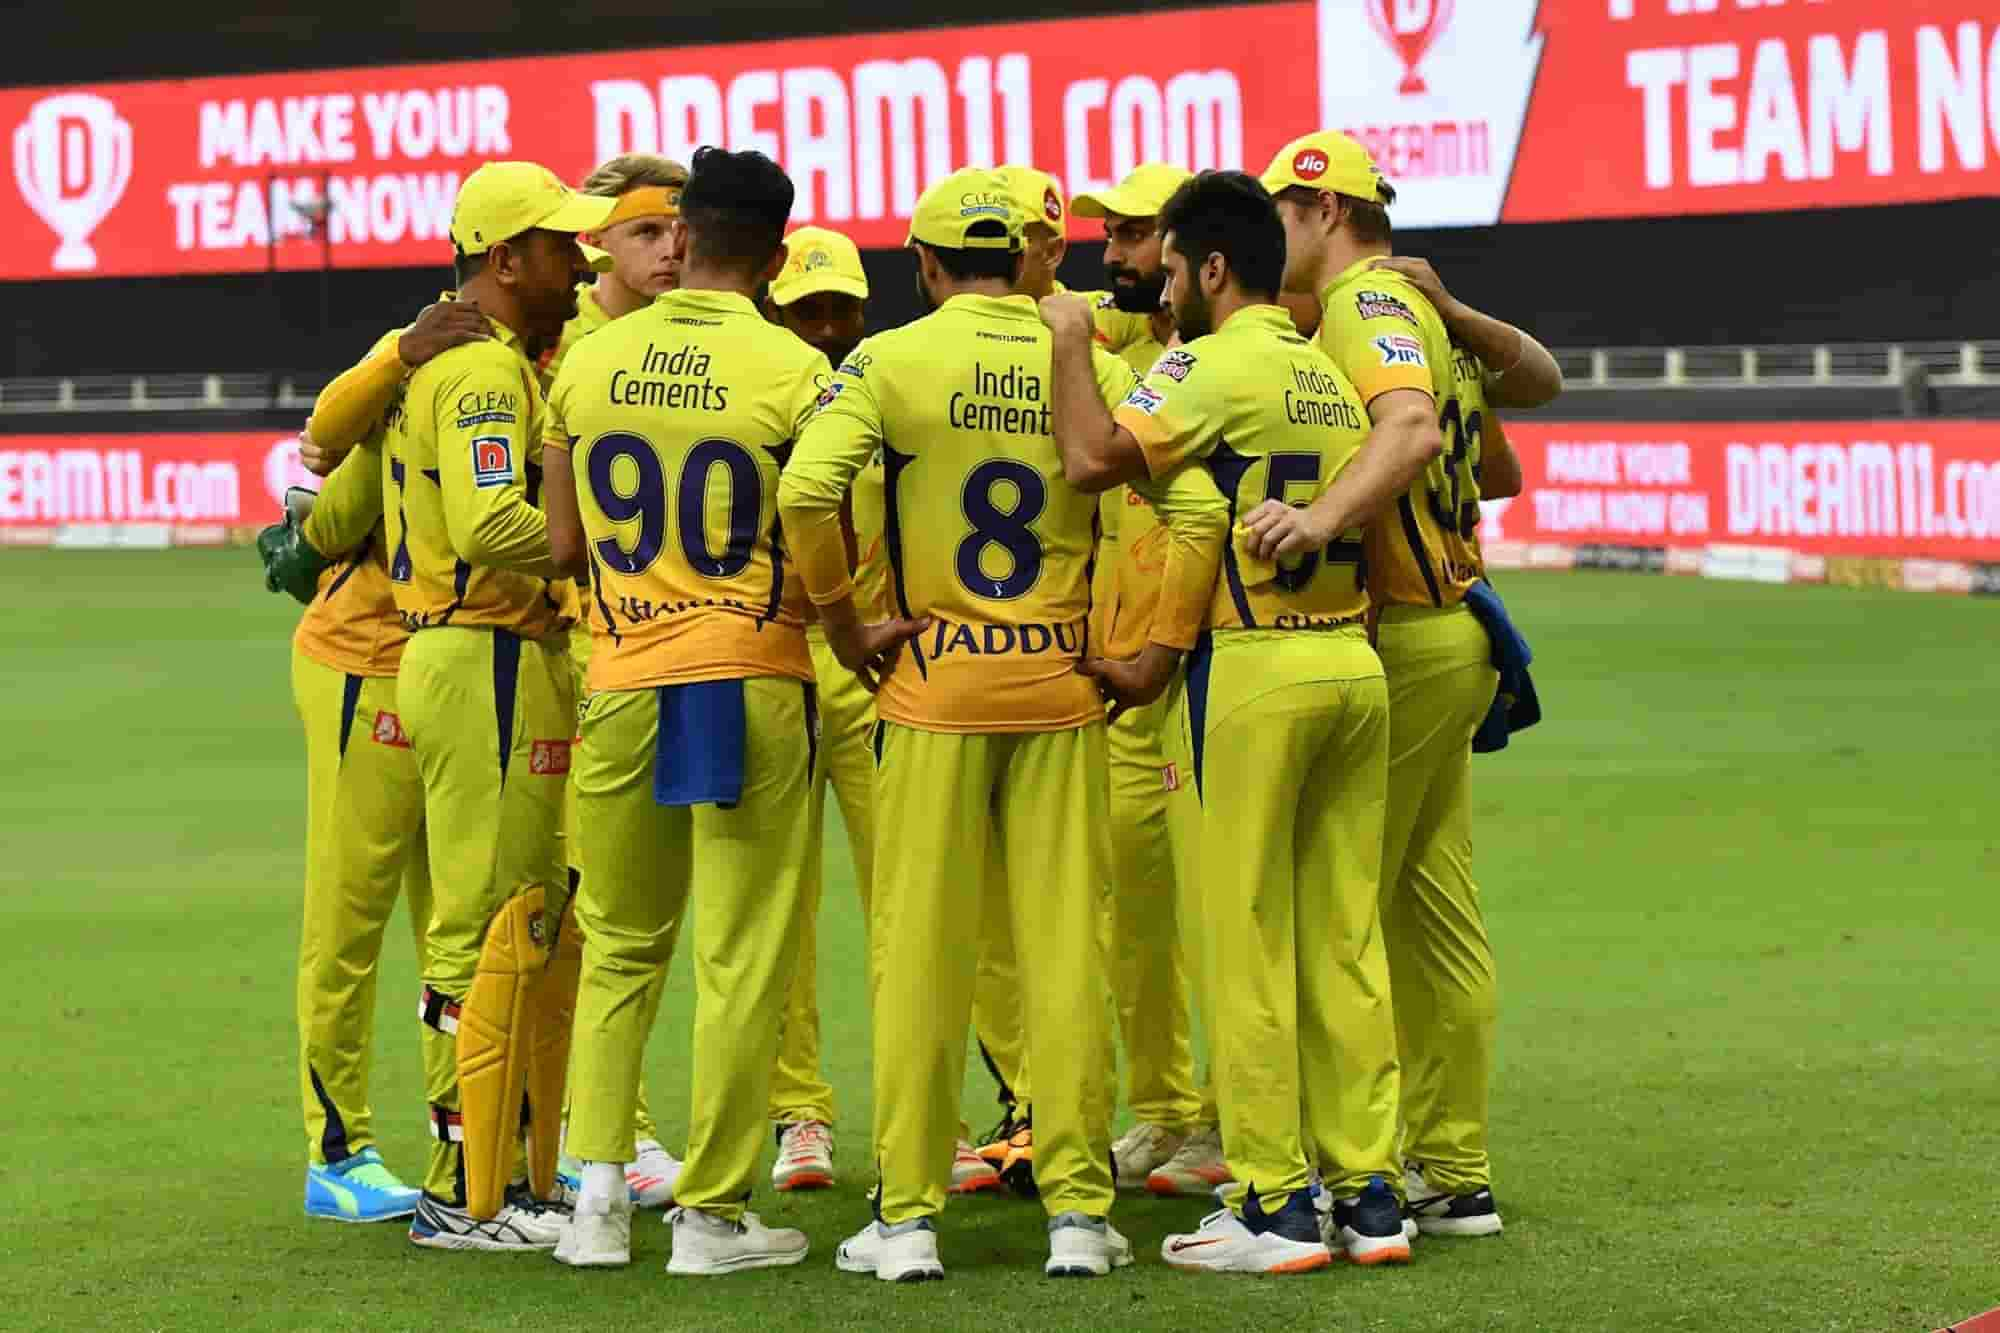 IPL 2021 Chennai Super Kings (CSK) Schedule with Venue, Date, Match Timings